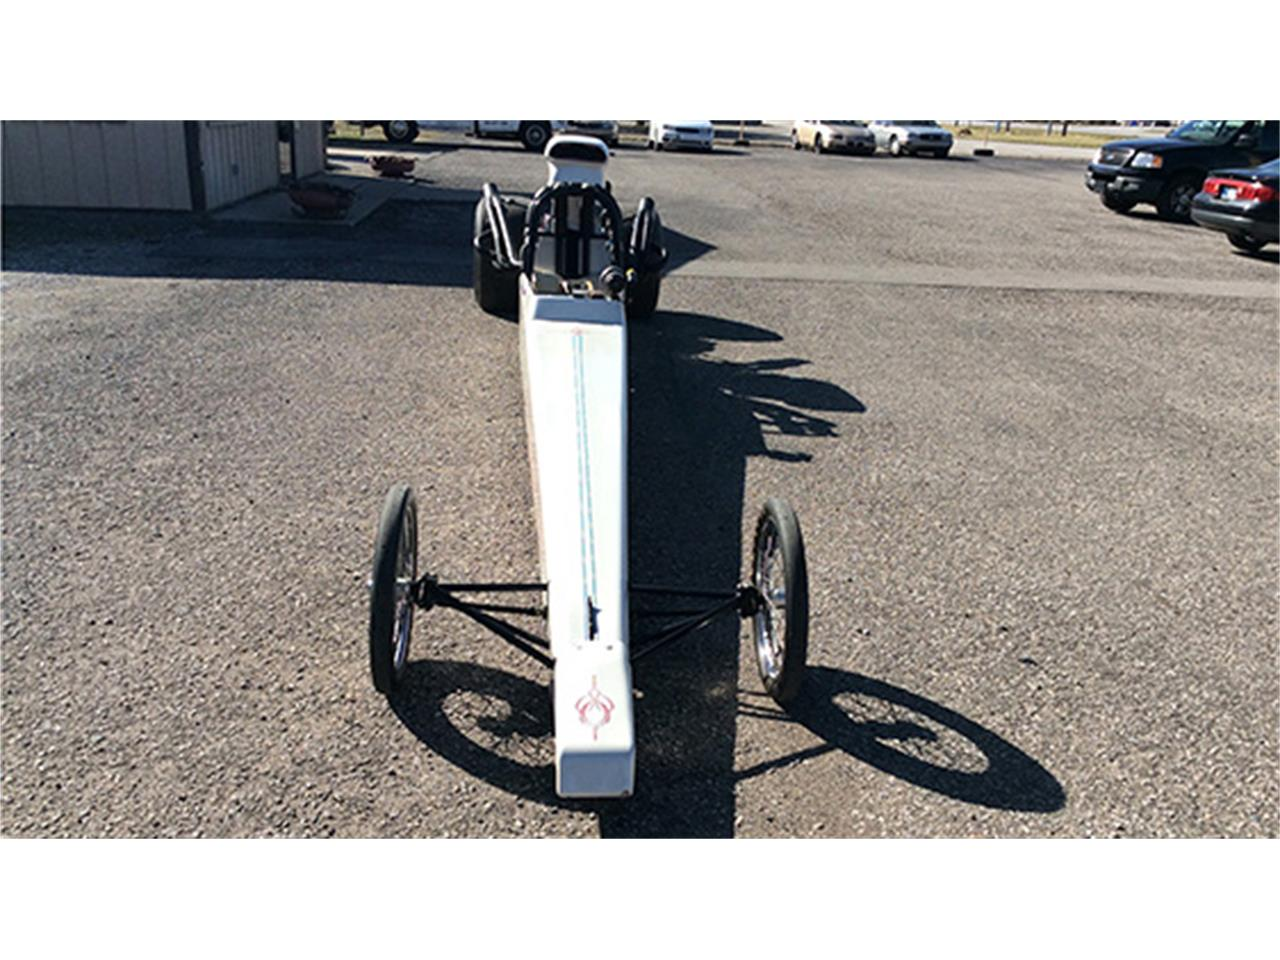 1986 Chevrolet Spitizer Rear Engine Dragster for Sale